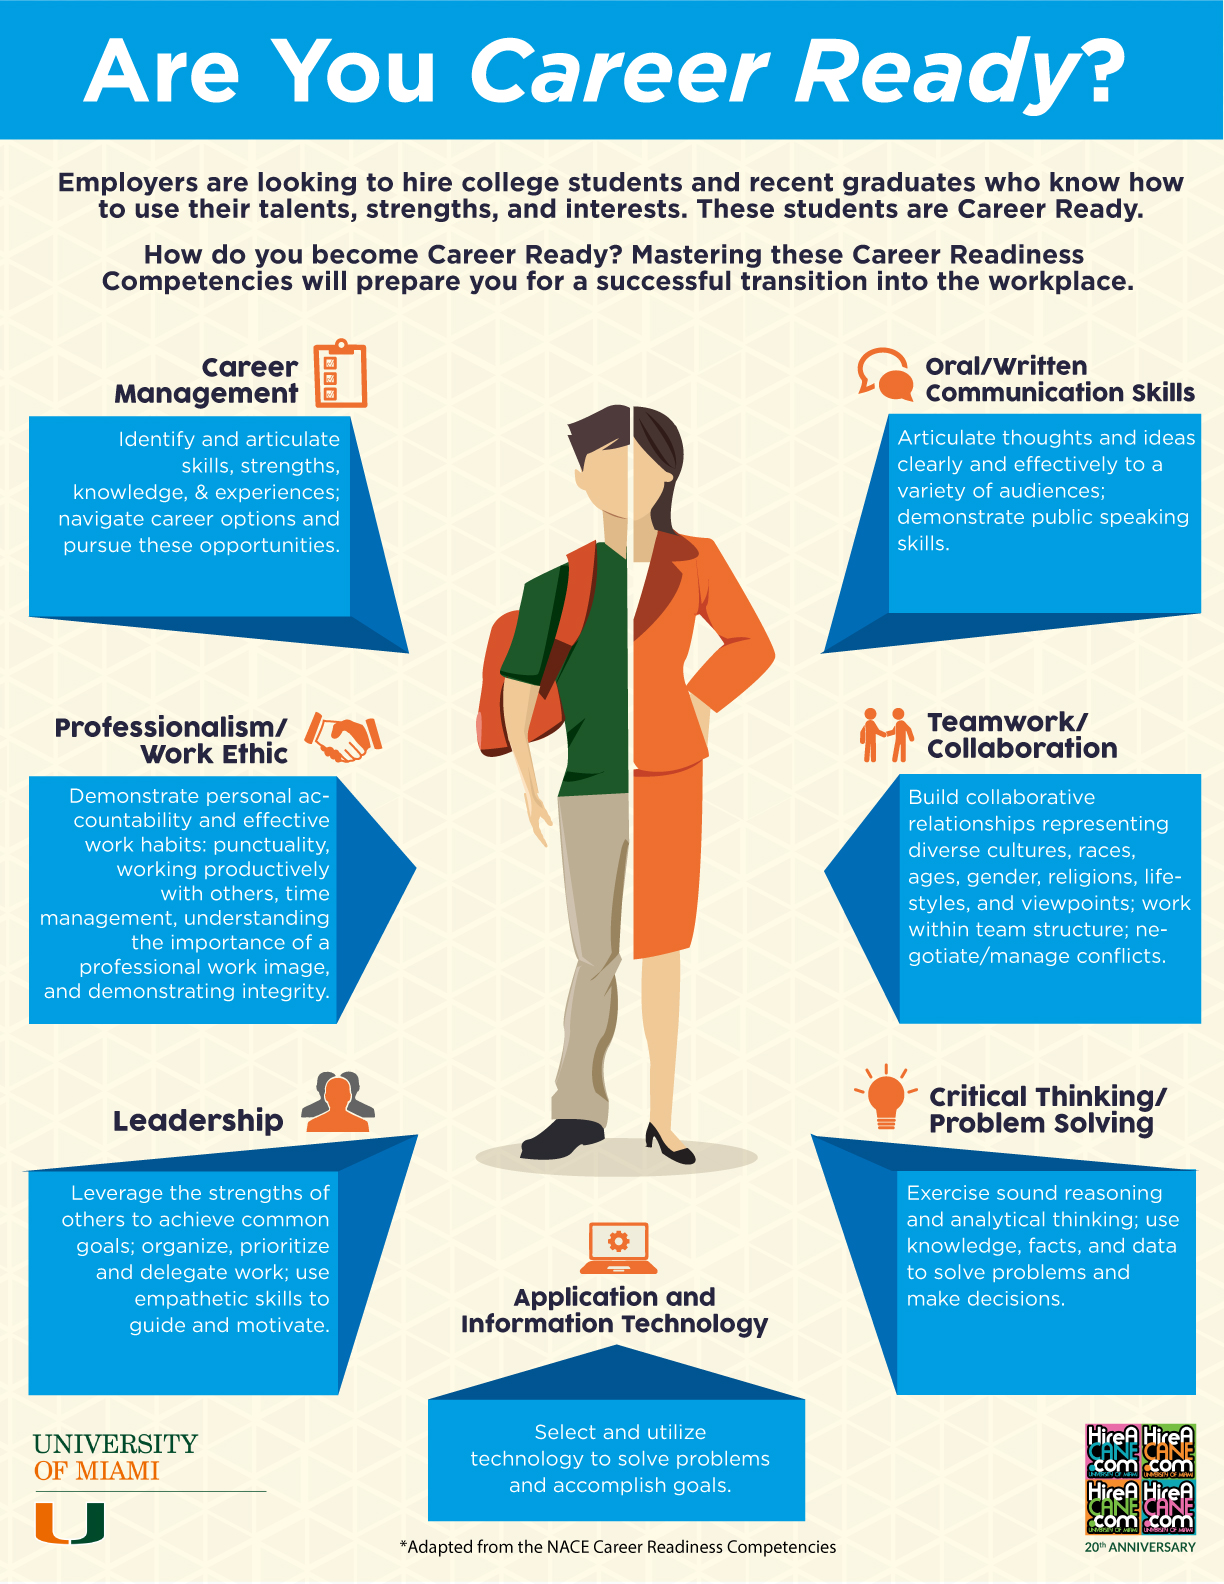 Critical thinking benefits workplace